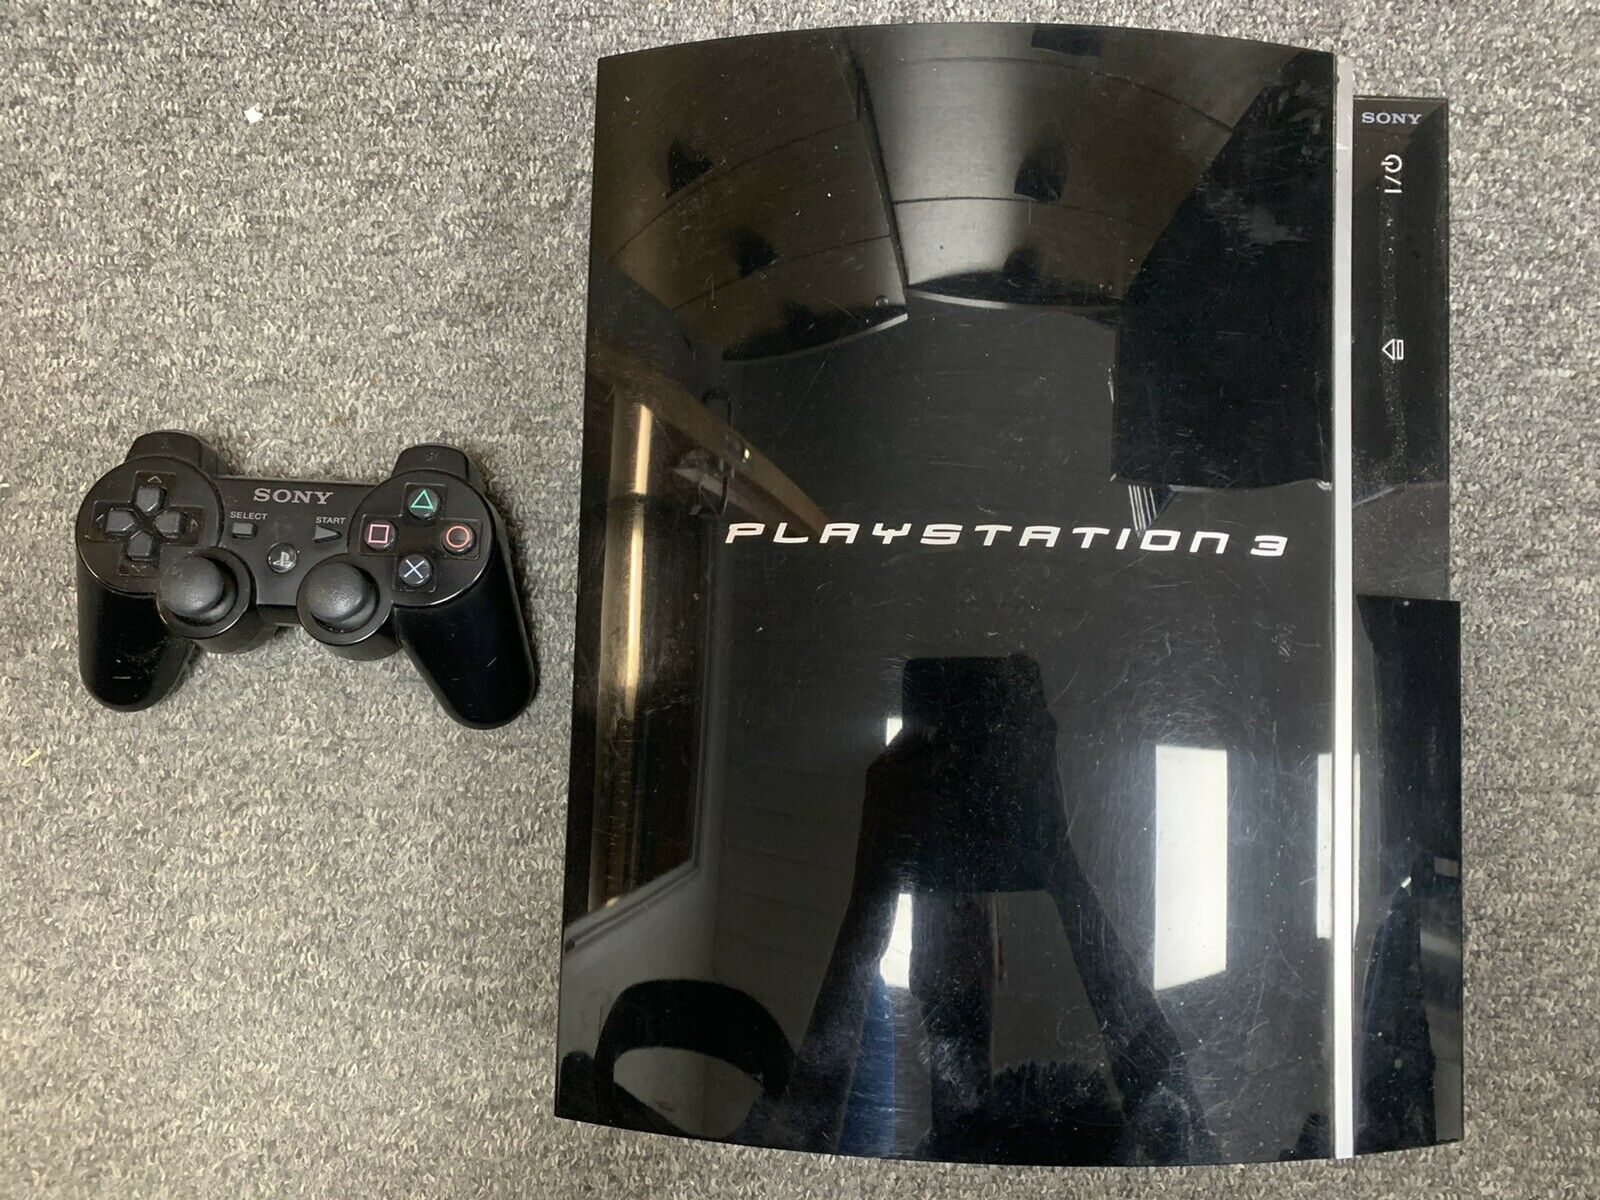 PlayStation 3 PS3 Console w/UK Power Supply, HDMI Cable & Controller CECHJ03